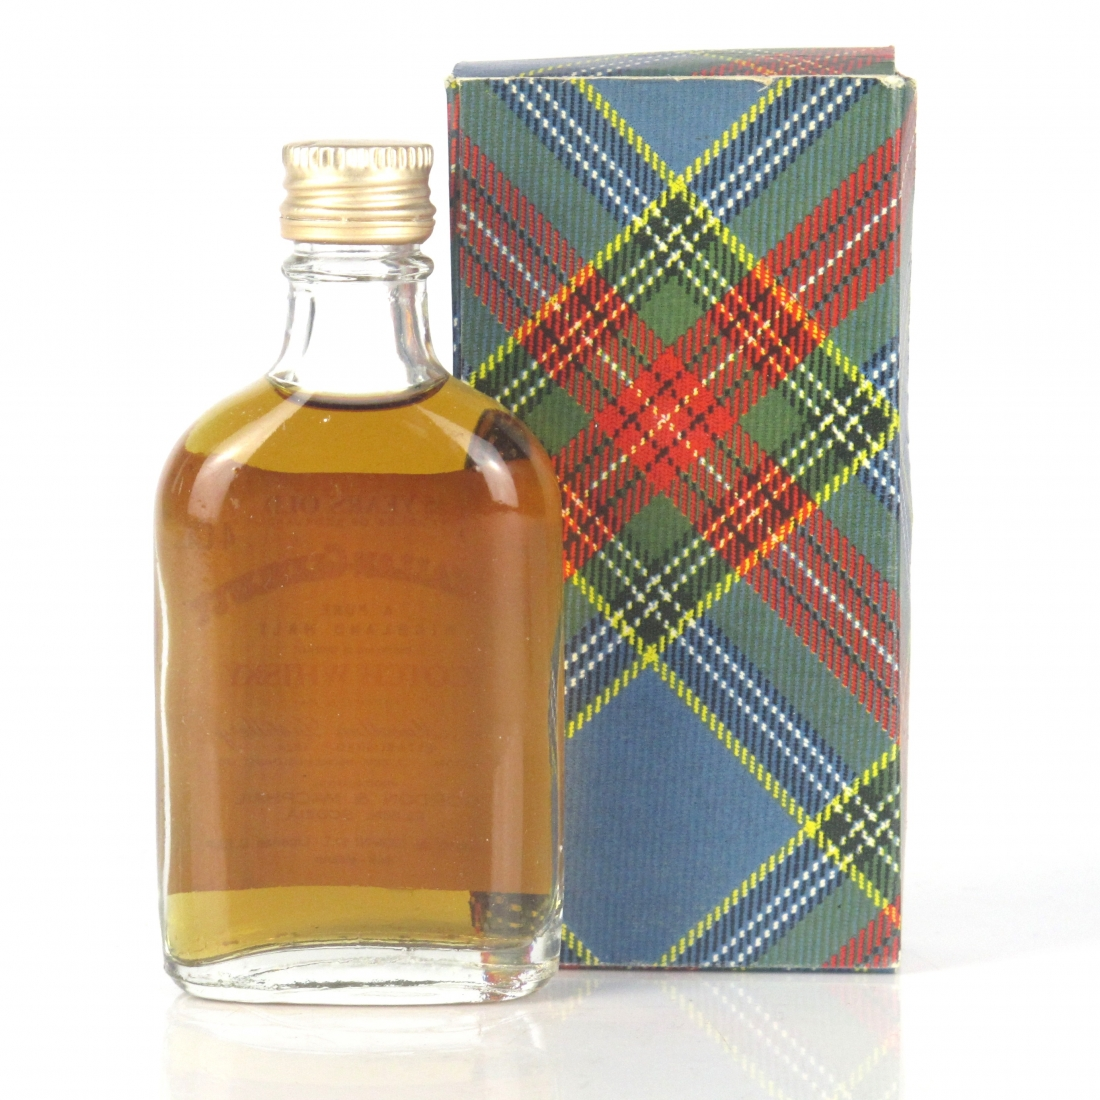 Macallan 15 Year Old Gordon and MacPhail 1970s Miniature 4cl / Donini Import